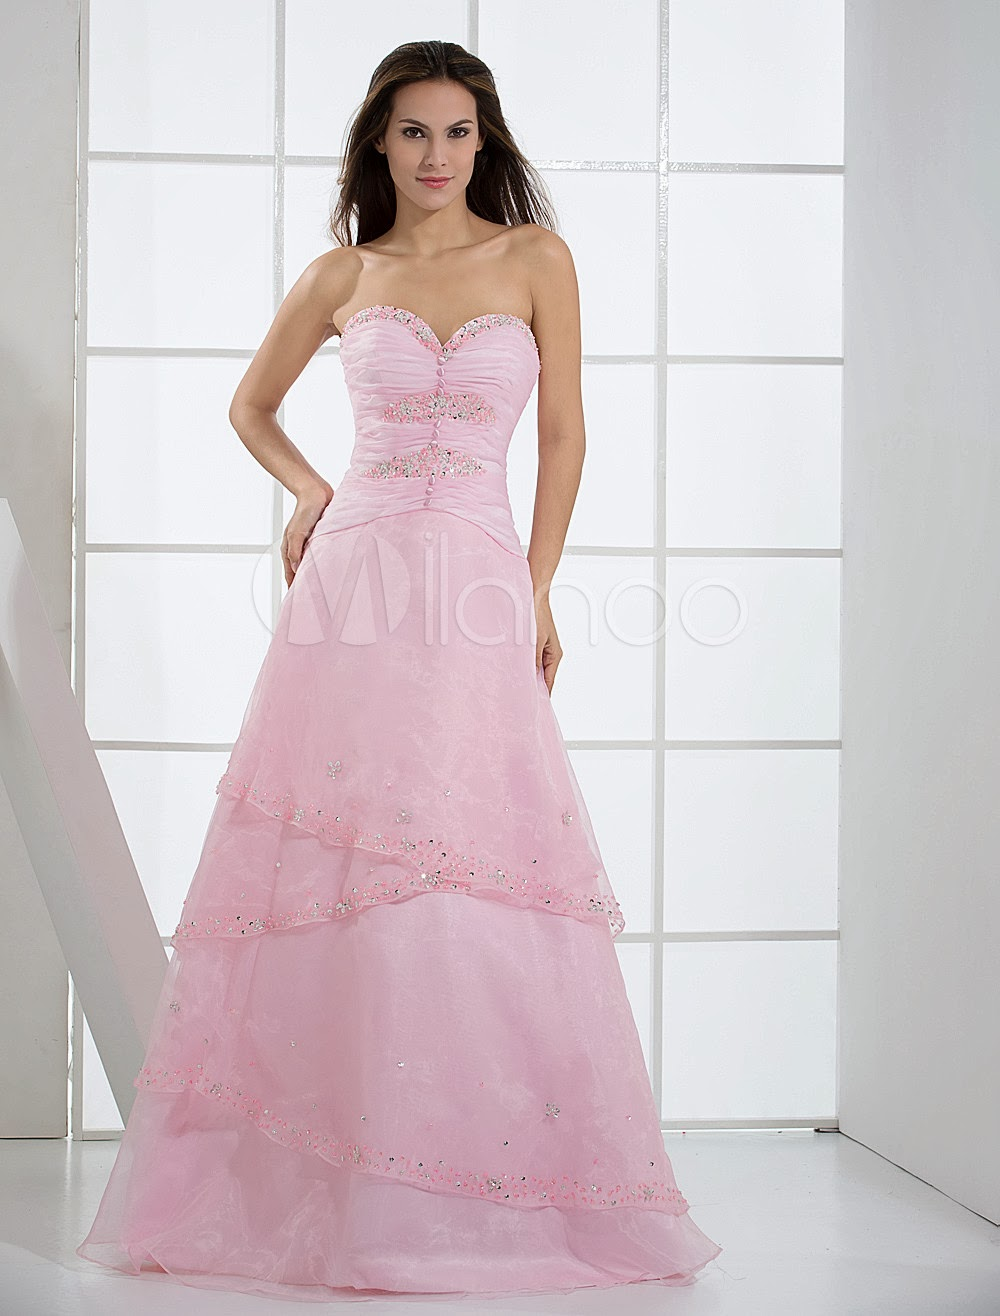 China Wholesale Dresses - Pink Strapless Satin Organza Prom Dress/Homecoming Dress